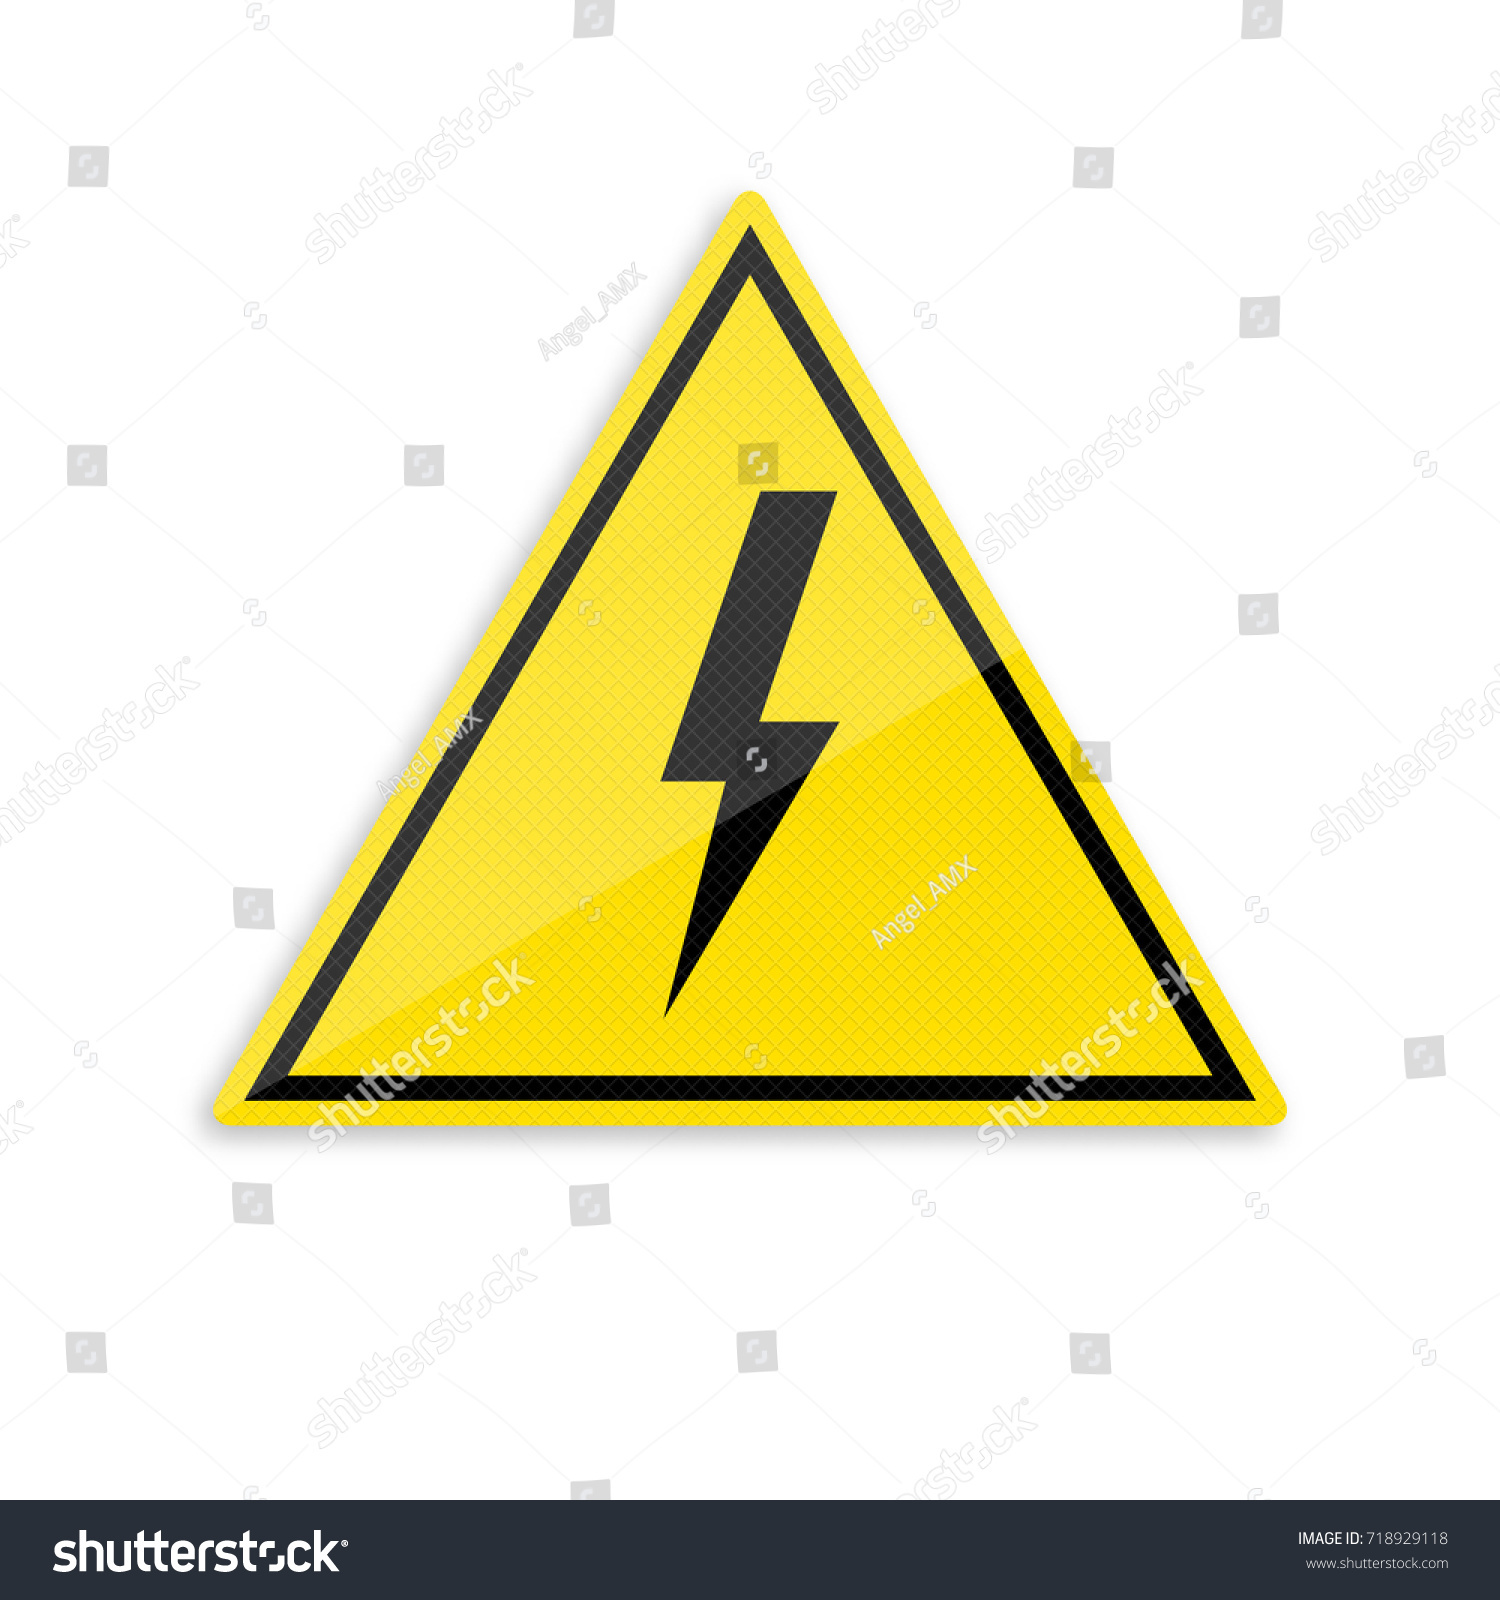 Charming How To Wire Ssr Tall Ibanez Pickup Wiring Regular Ibanez Rg Wiring Fender S1 Switch Wiring Diagram Youthful Coil Tap Wiring BlackStrat Wiring Bridge Tone High Voltage Sign Danger Symbol Black Stock Vector 718929118 ..